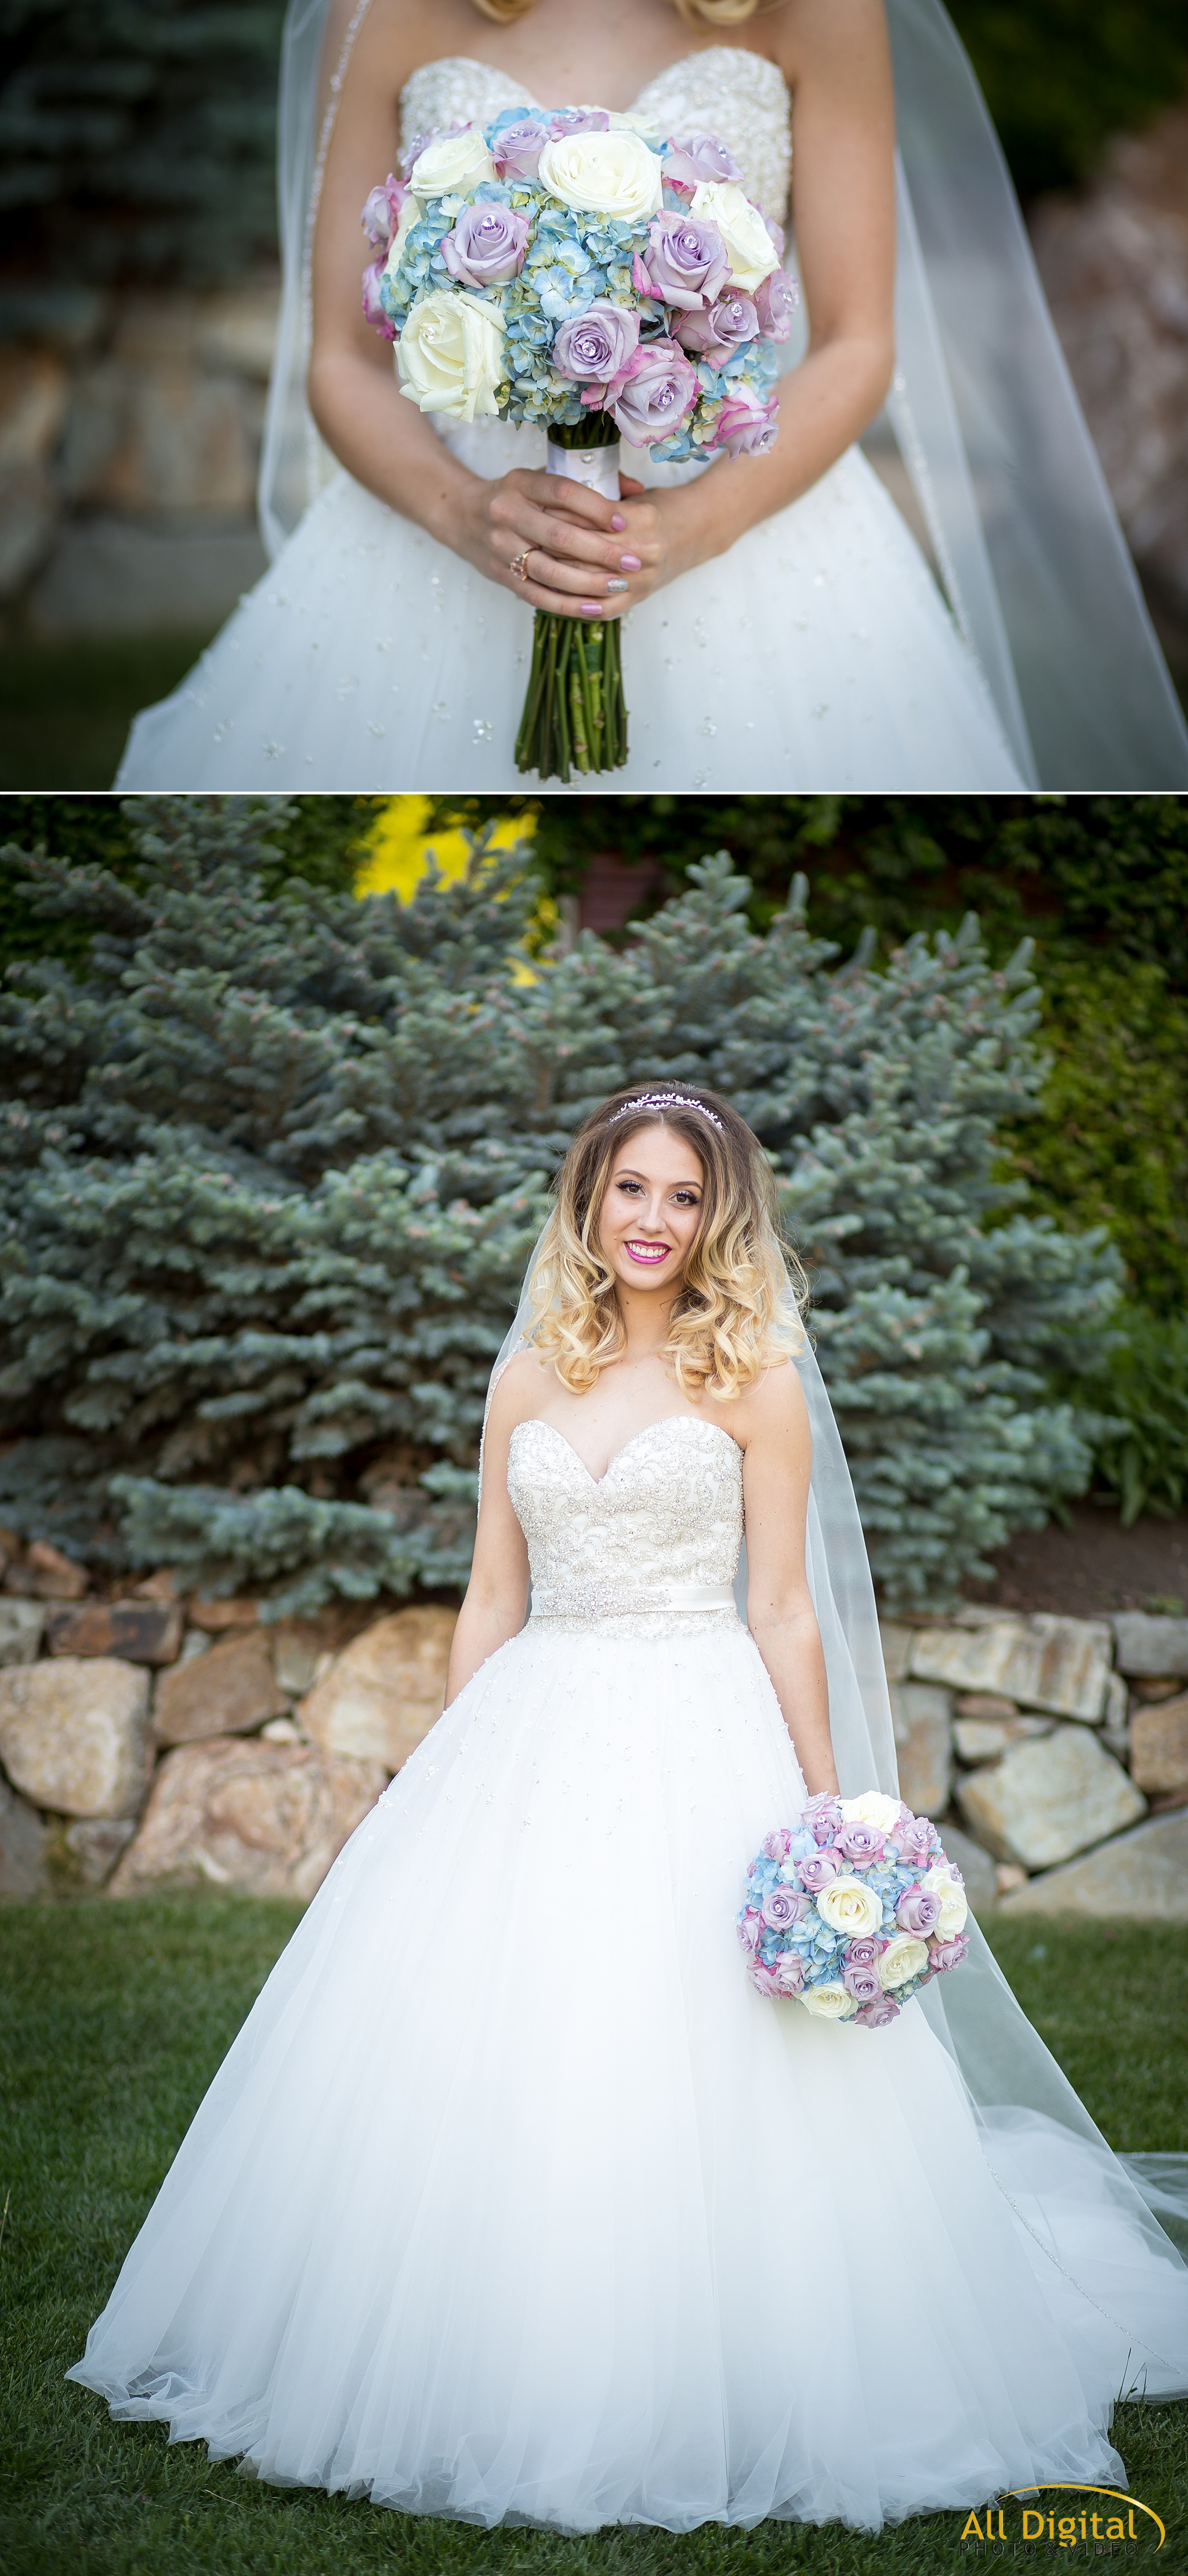 Bridal portraits at Stonebrook Manor.